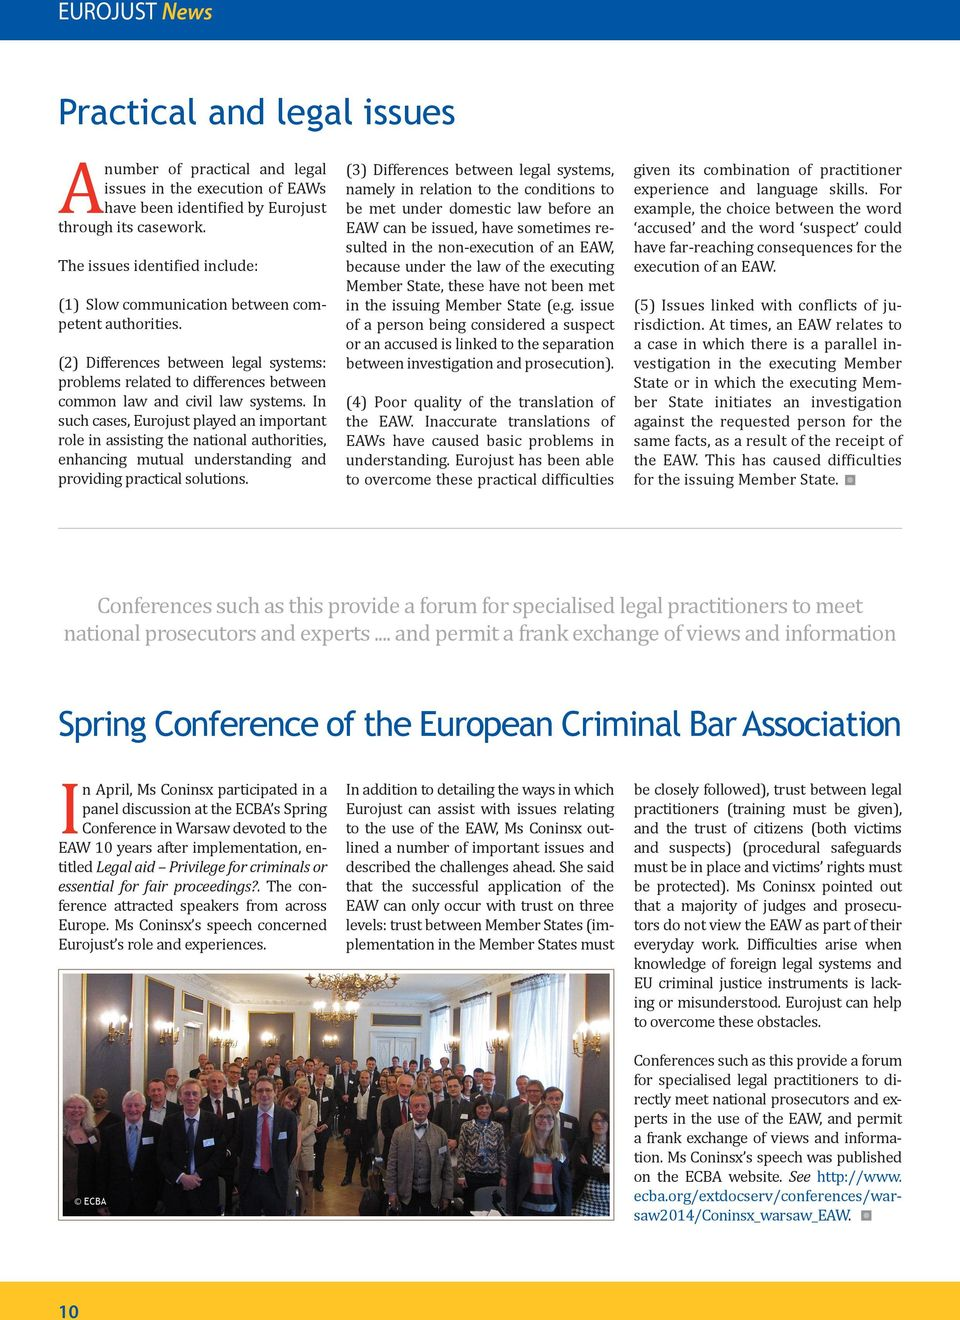 In such cases, Eurojust played an important role in assisting the national authorities, enhancing mutual understanding and providing practical solutions.